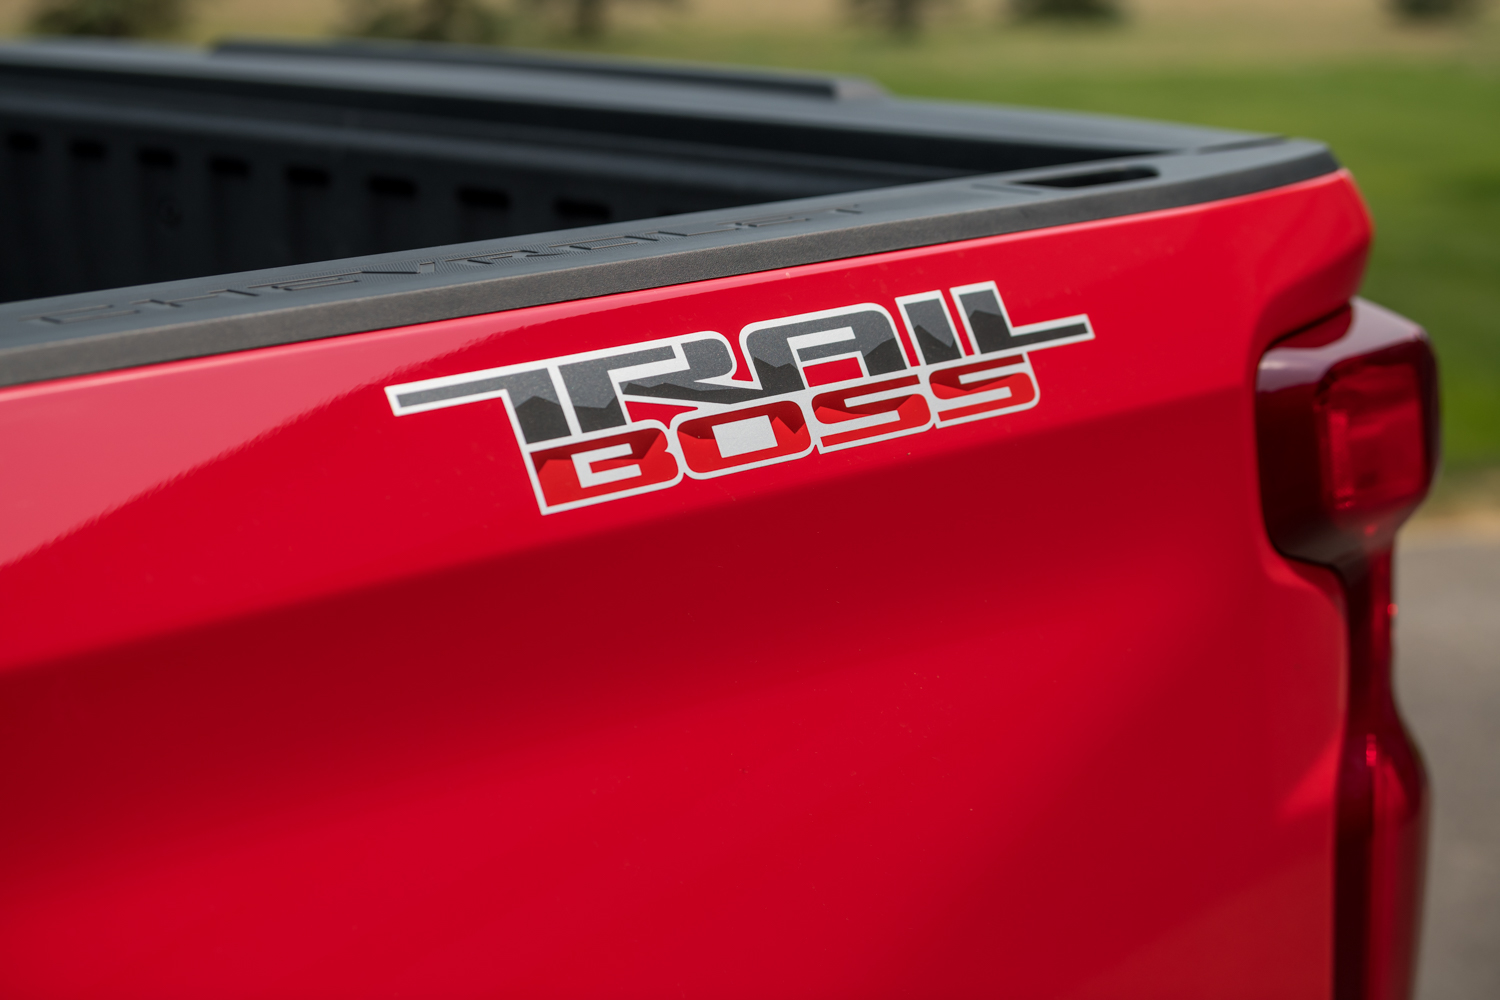 First Drive: 2019 Chevrolet Silverado 1500 Trail Boss Review